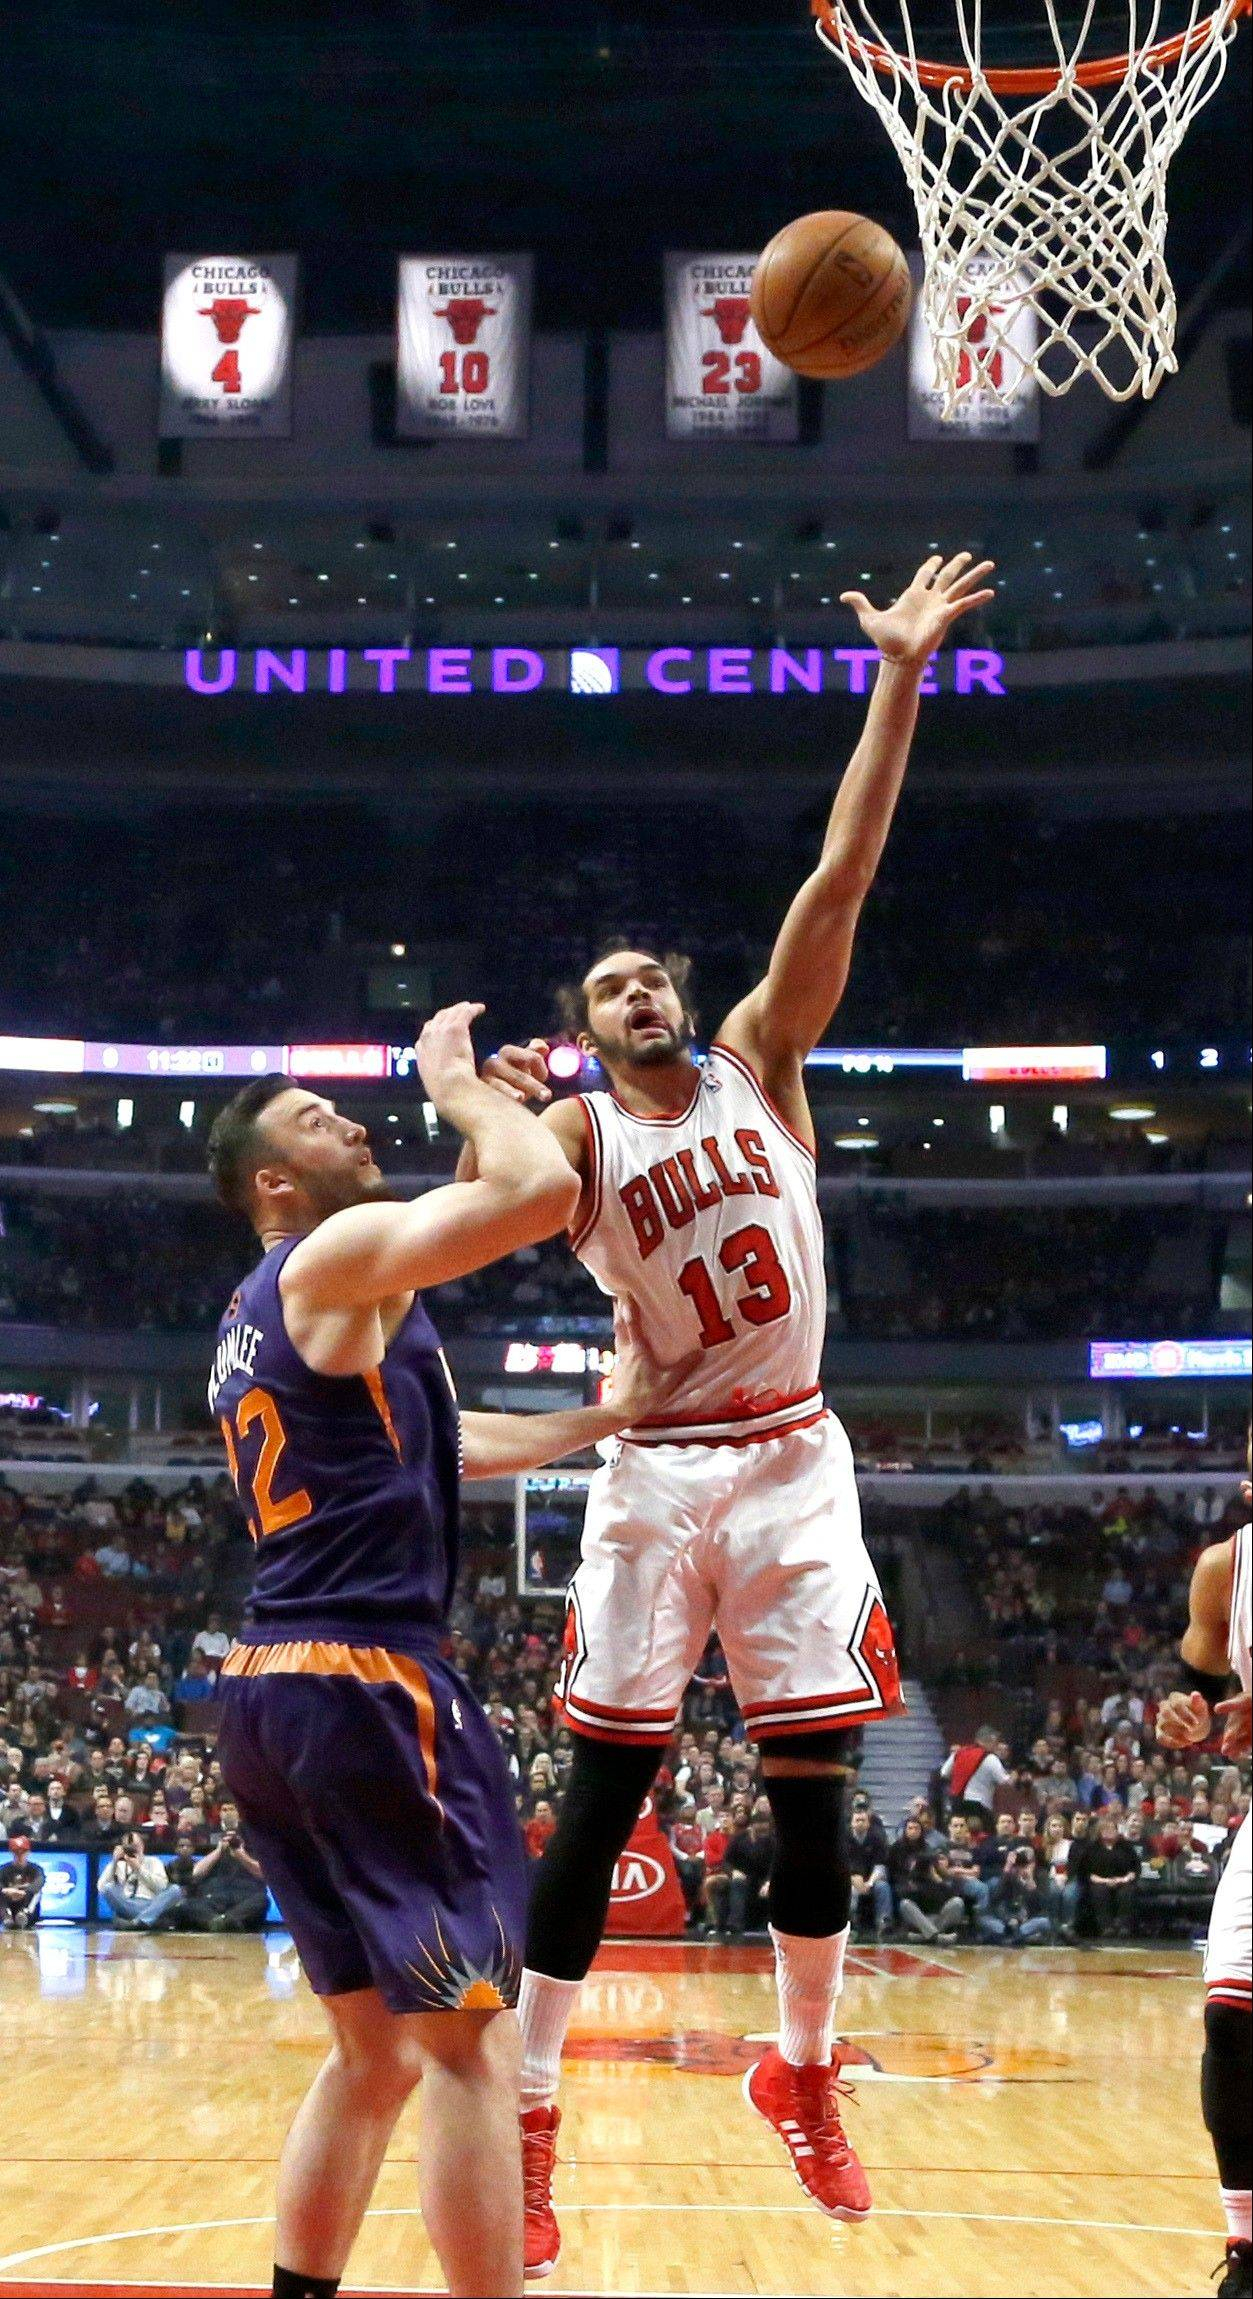 Chicago Bulls center Joakim Noah (13) shoots over Phoenix Suns center Miles Plumlee during the first half of an NBA basketball game, Tuesday, Jan. 7, 2014, in Chicago. (AP Photo/Charles Rex Arbogast)